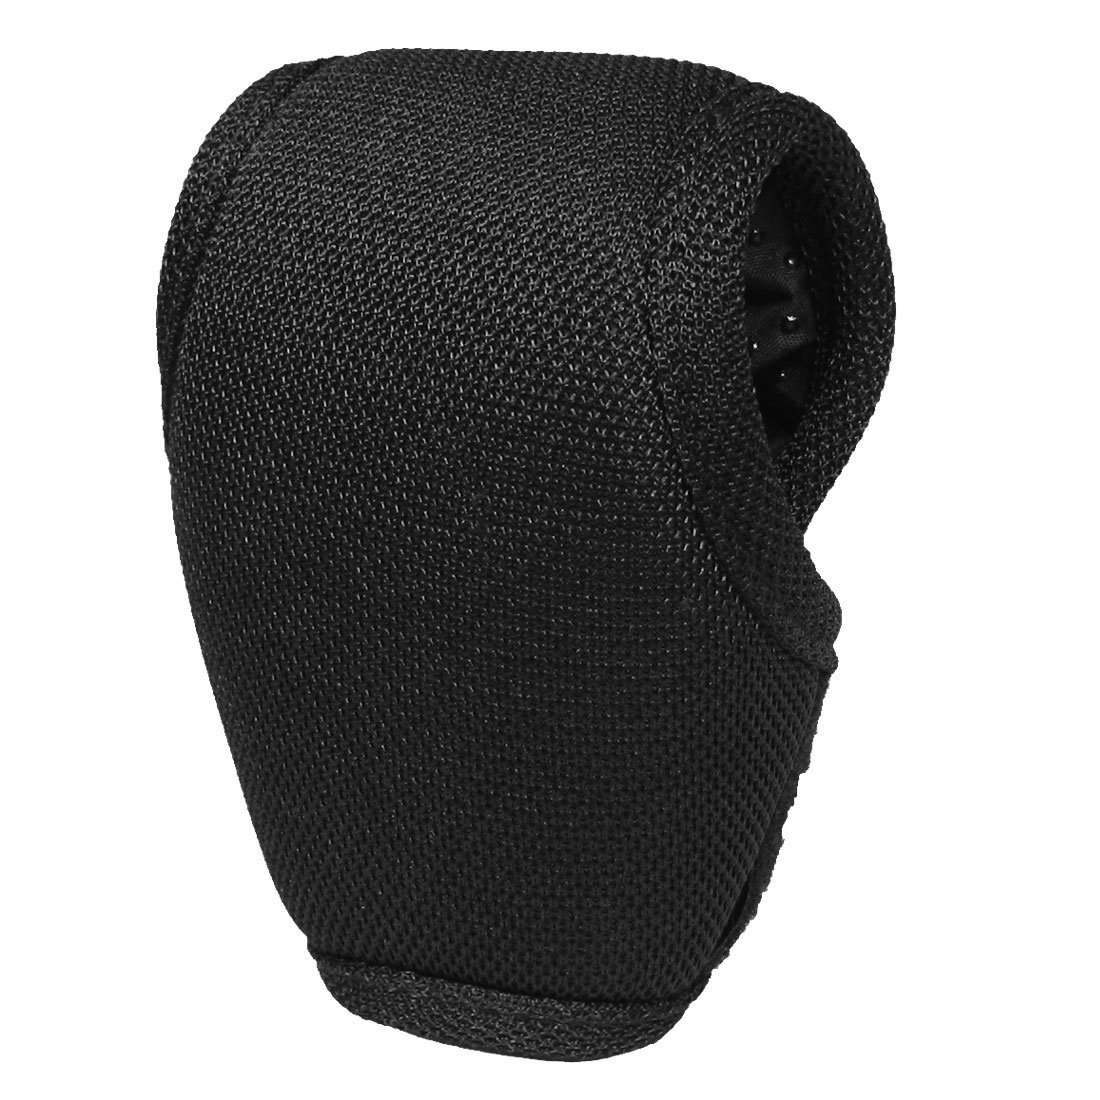 Foam Padded Truck Car Gear Shift Knob Shifter Cover Sleeve Pad Case Black Sourcingmap a13030400ux0077